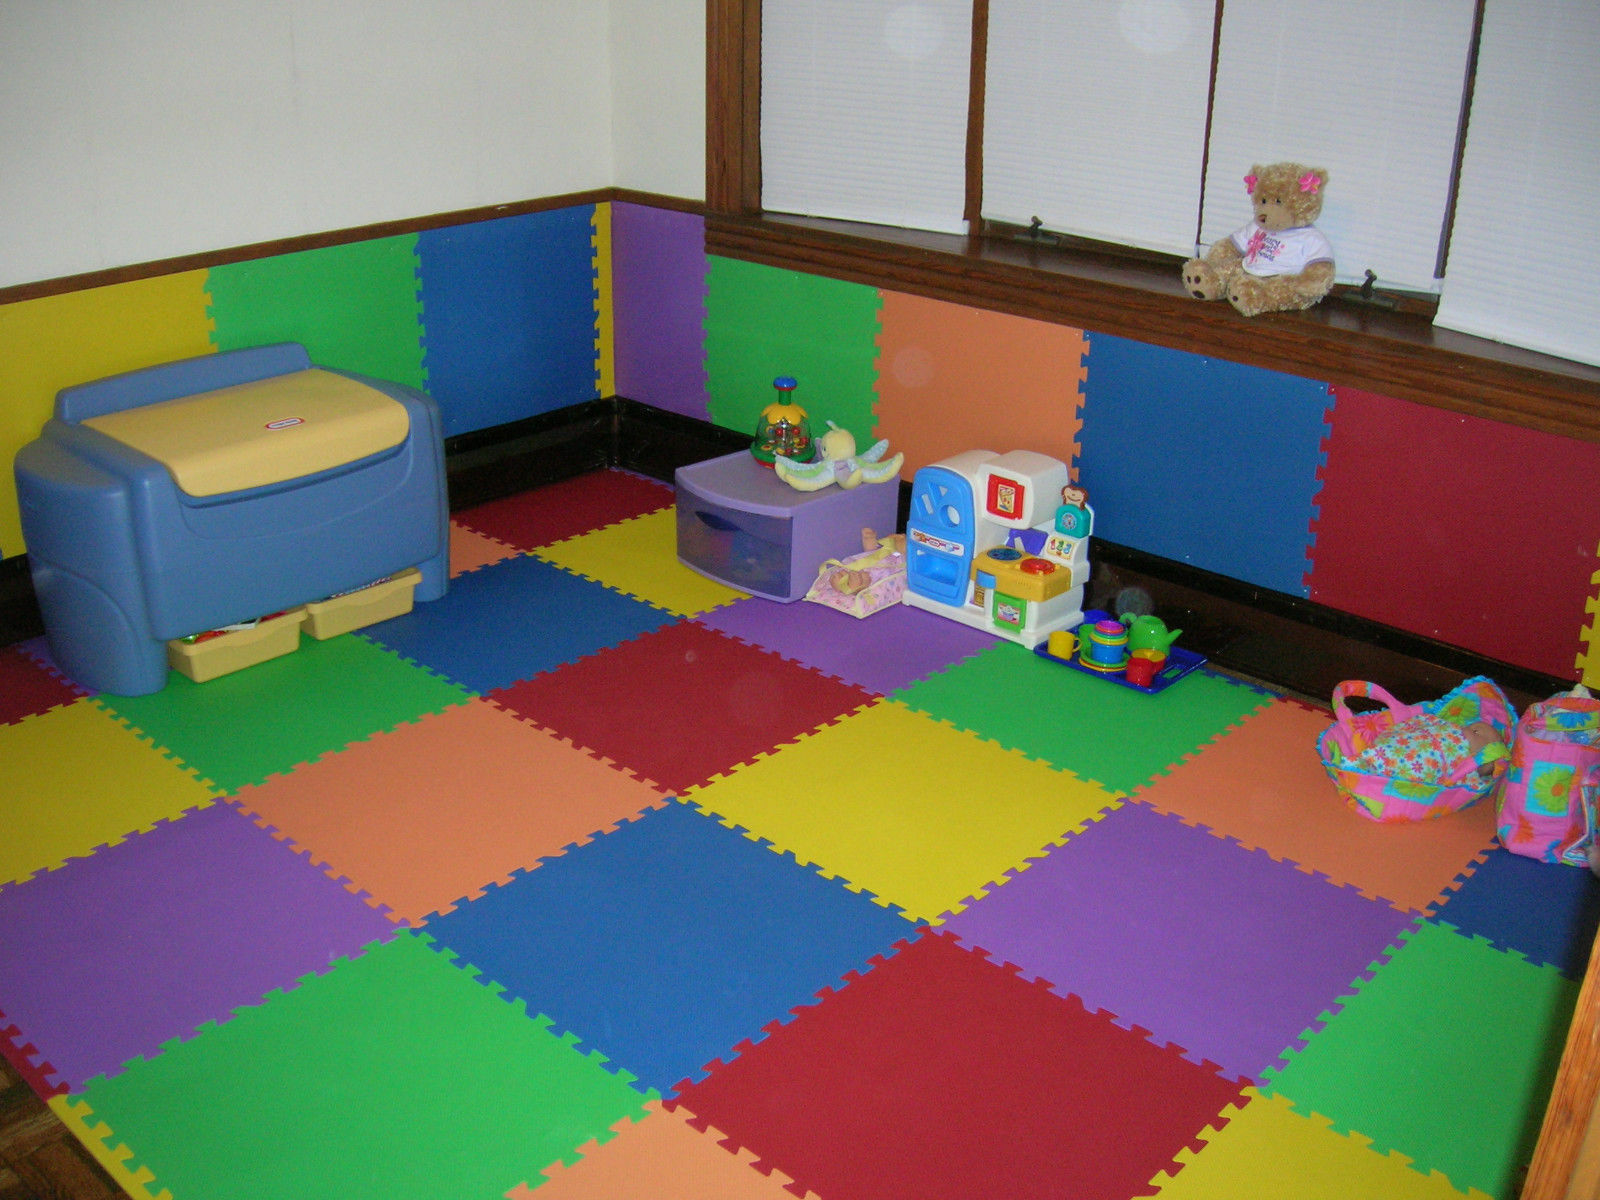 Foam puzzle floor mat xl large pieces gym play area garage playroom 2 dailygadgetfo Image collections